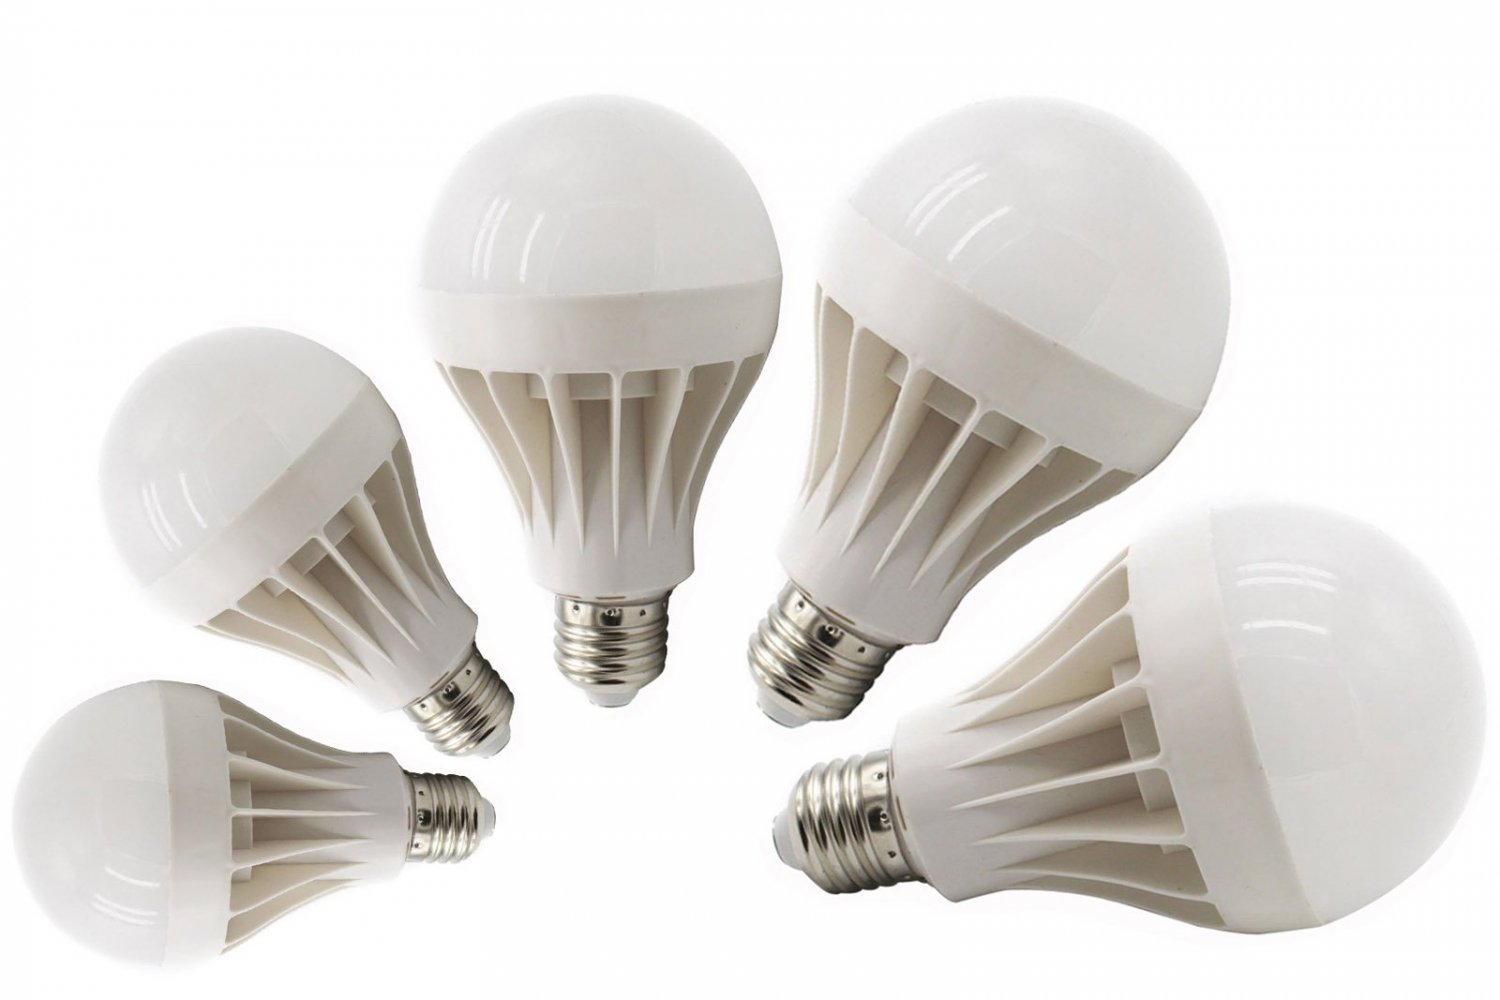 Wholesale E26 E27 Energy Saving LED Bulb Globe Light Lamp Warm/Cool White 110V